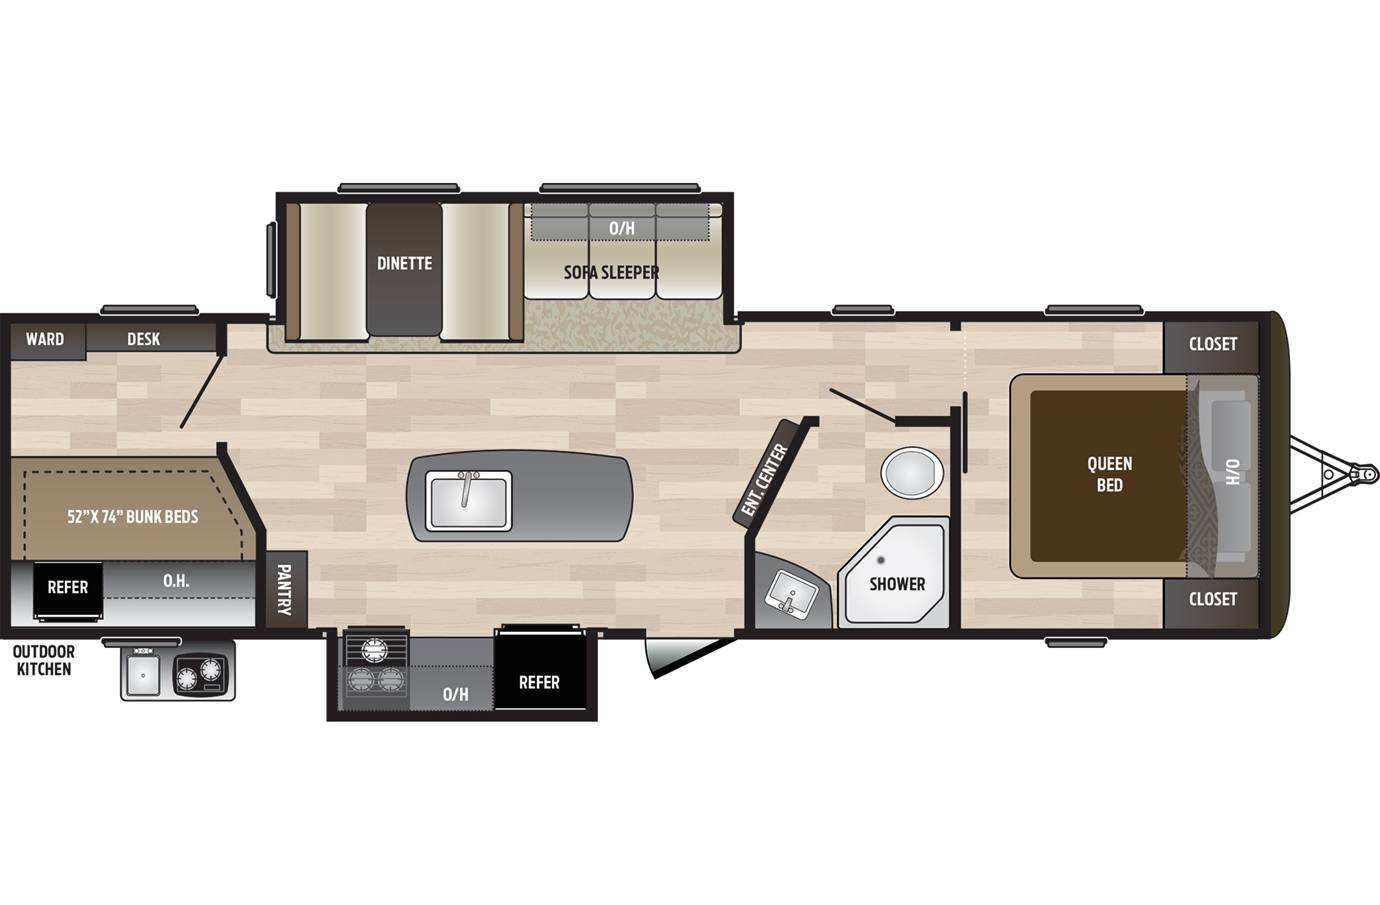 2019 Hideout By Keystone 30bhkswe West For Sale In Silsbee Monitor Panel Wiring Diagram Previous